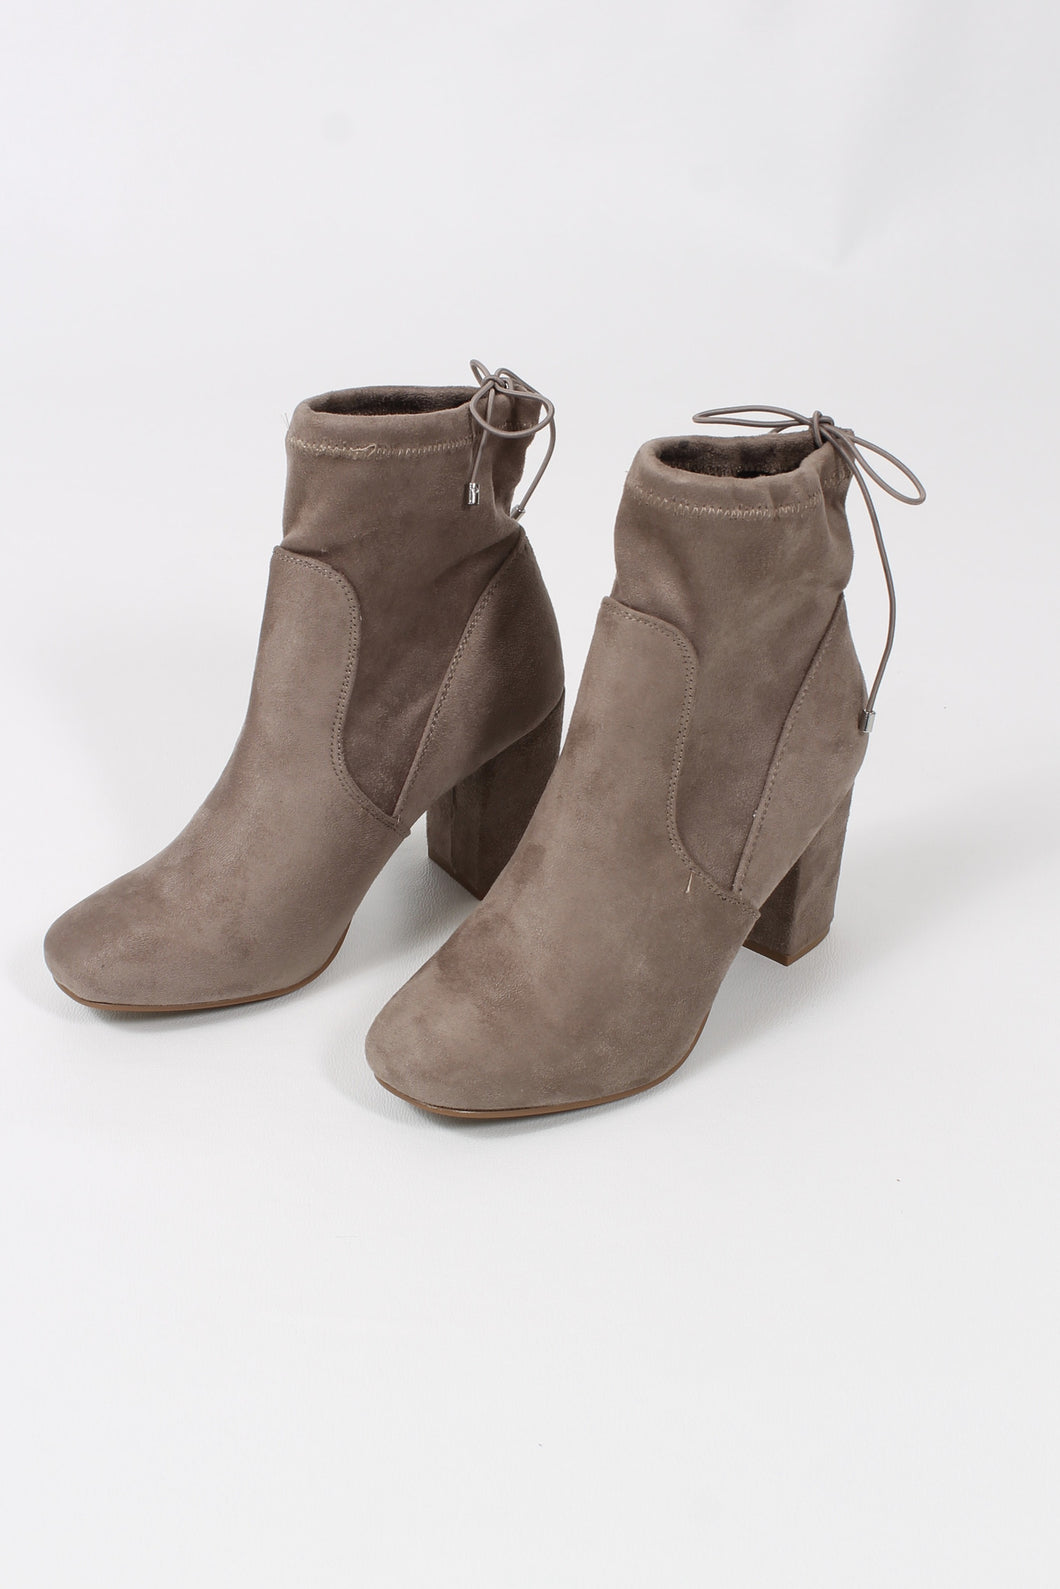 Suedette Grey Booties- Chinese Laundry Kyla